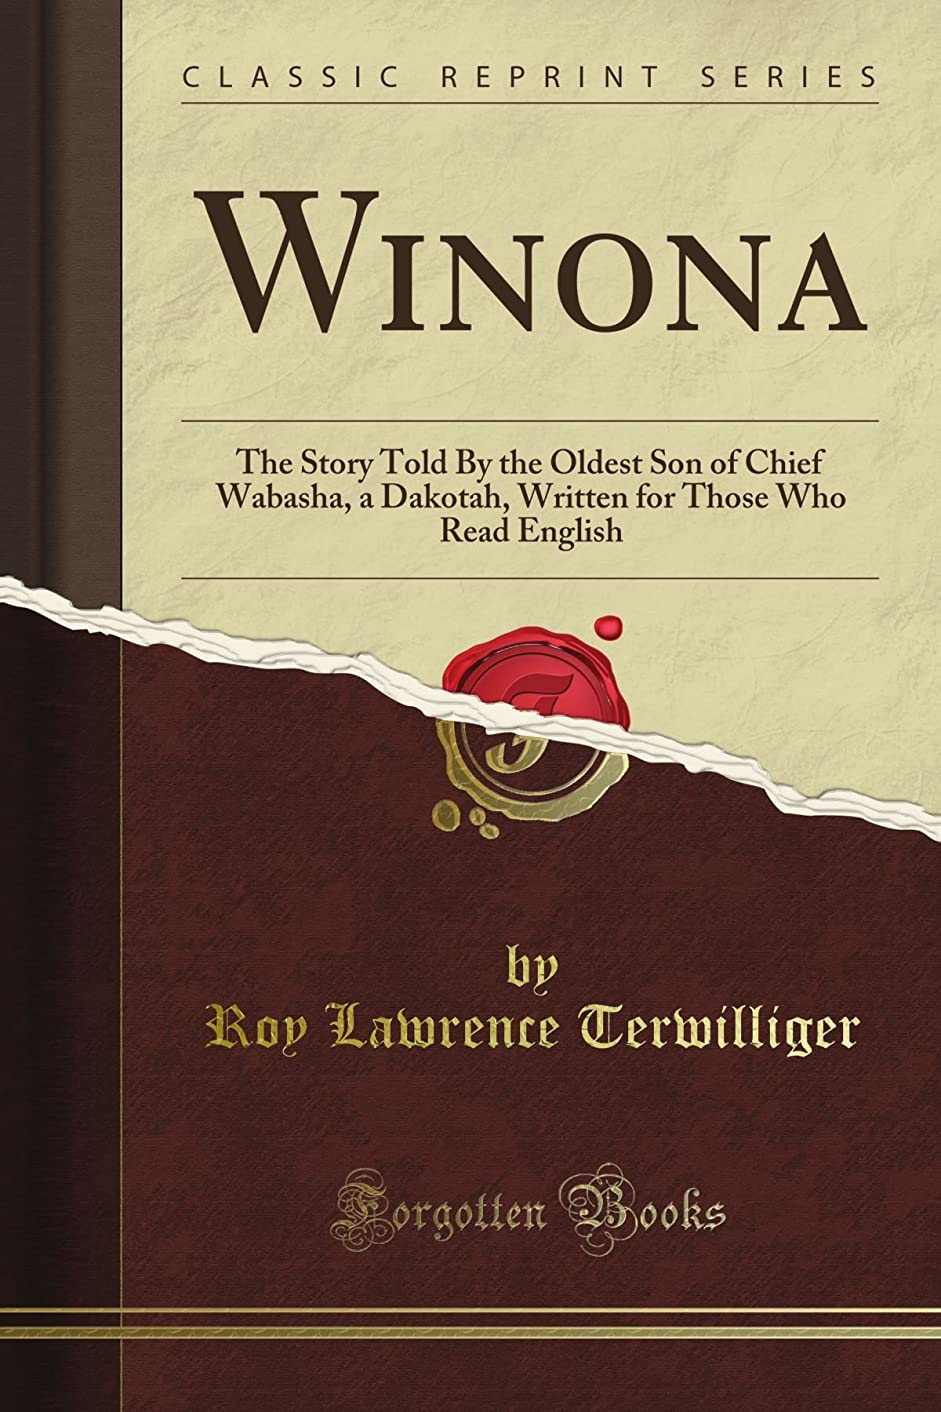 群集チロ水を飲むWinona: The Story Told By the Oldest Son of Chief Wabasha, a Dakotah, Written for Those Who Read English (Classic Reprint)